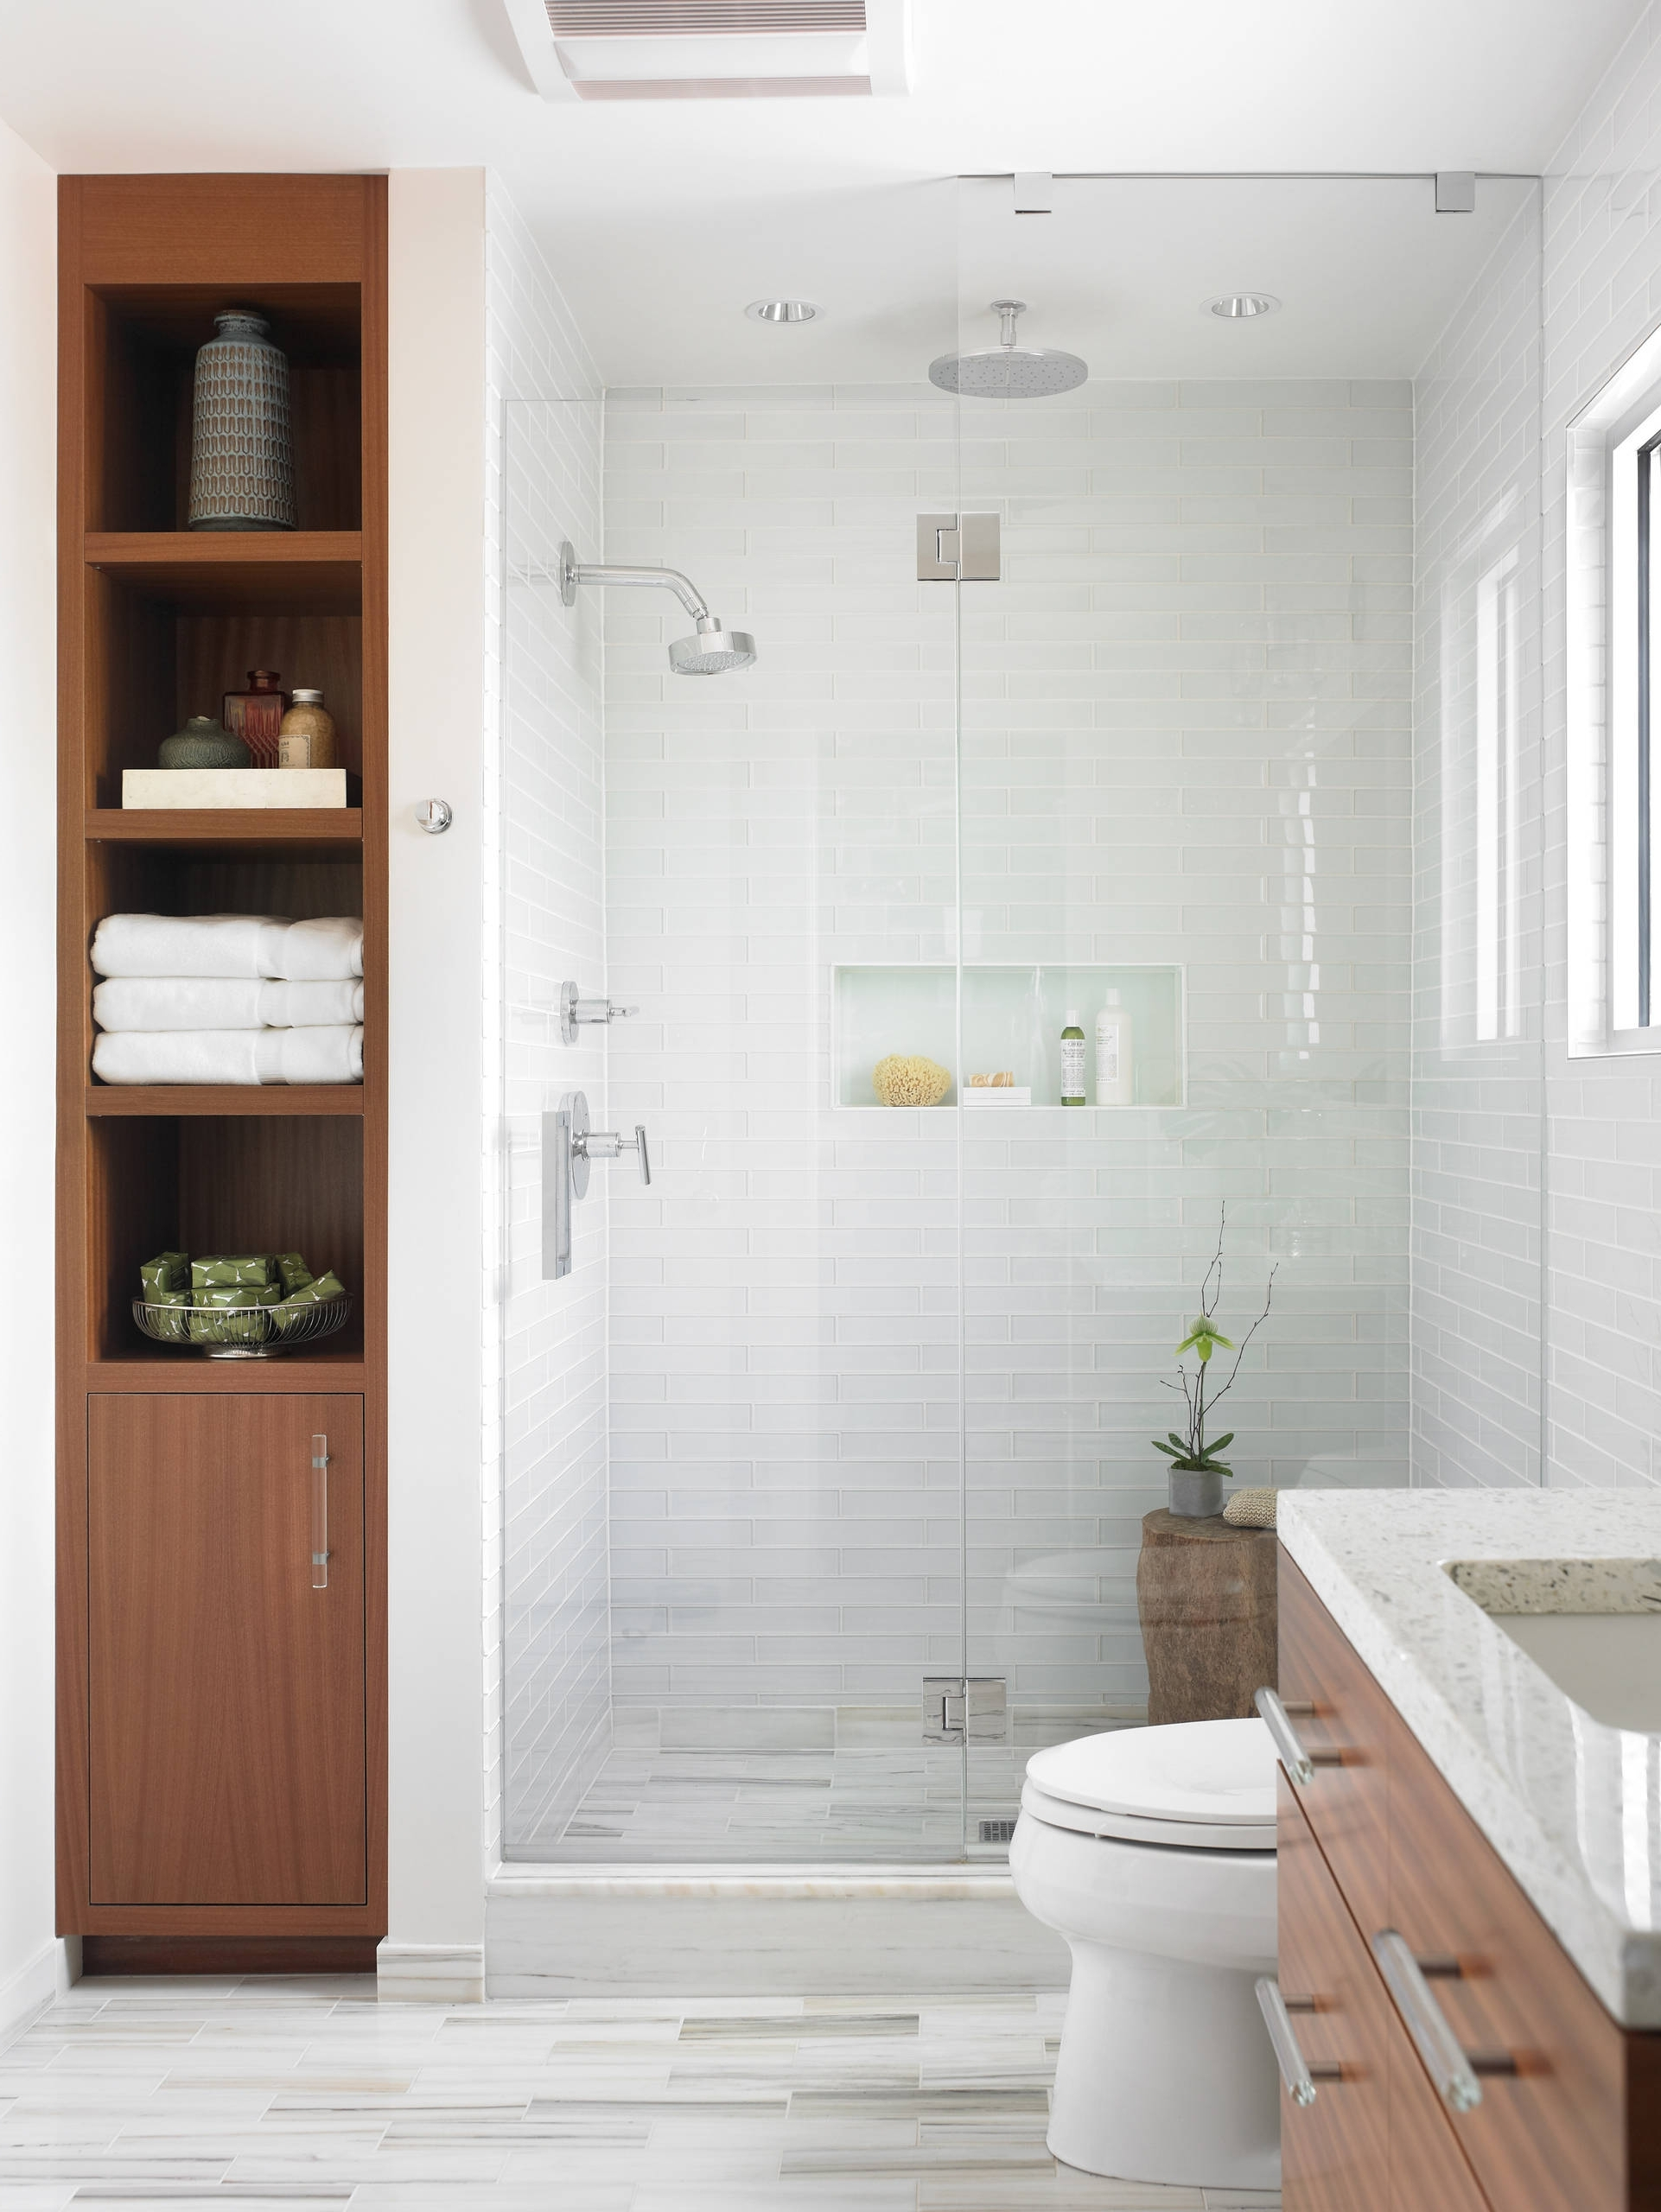 75 Beautiful Modern Bathroom Pictures & Ideas January 40+ Modern Bathroom Designs In Kenya Inspirations